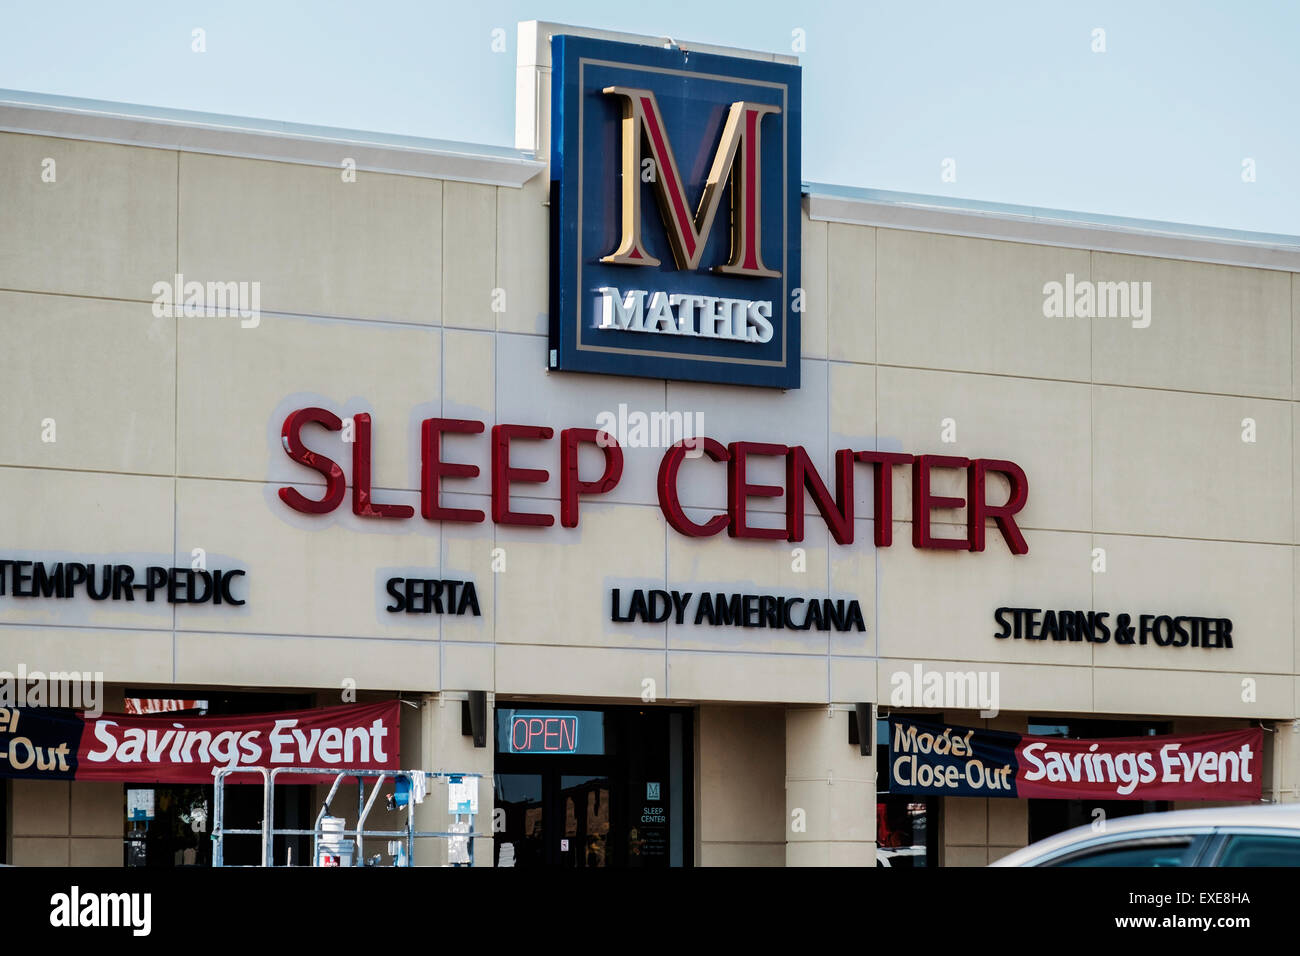 Purchase a mattress from mathis brothers sleep center in okc gel foam bed queen eco paid dollars first month it was sinking to bed frame went back to store they told us oh it .